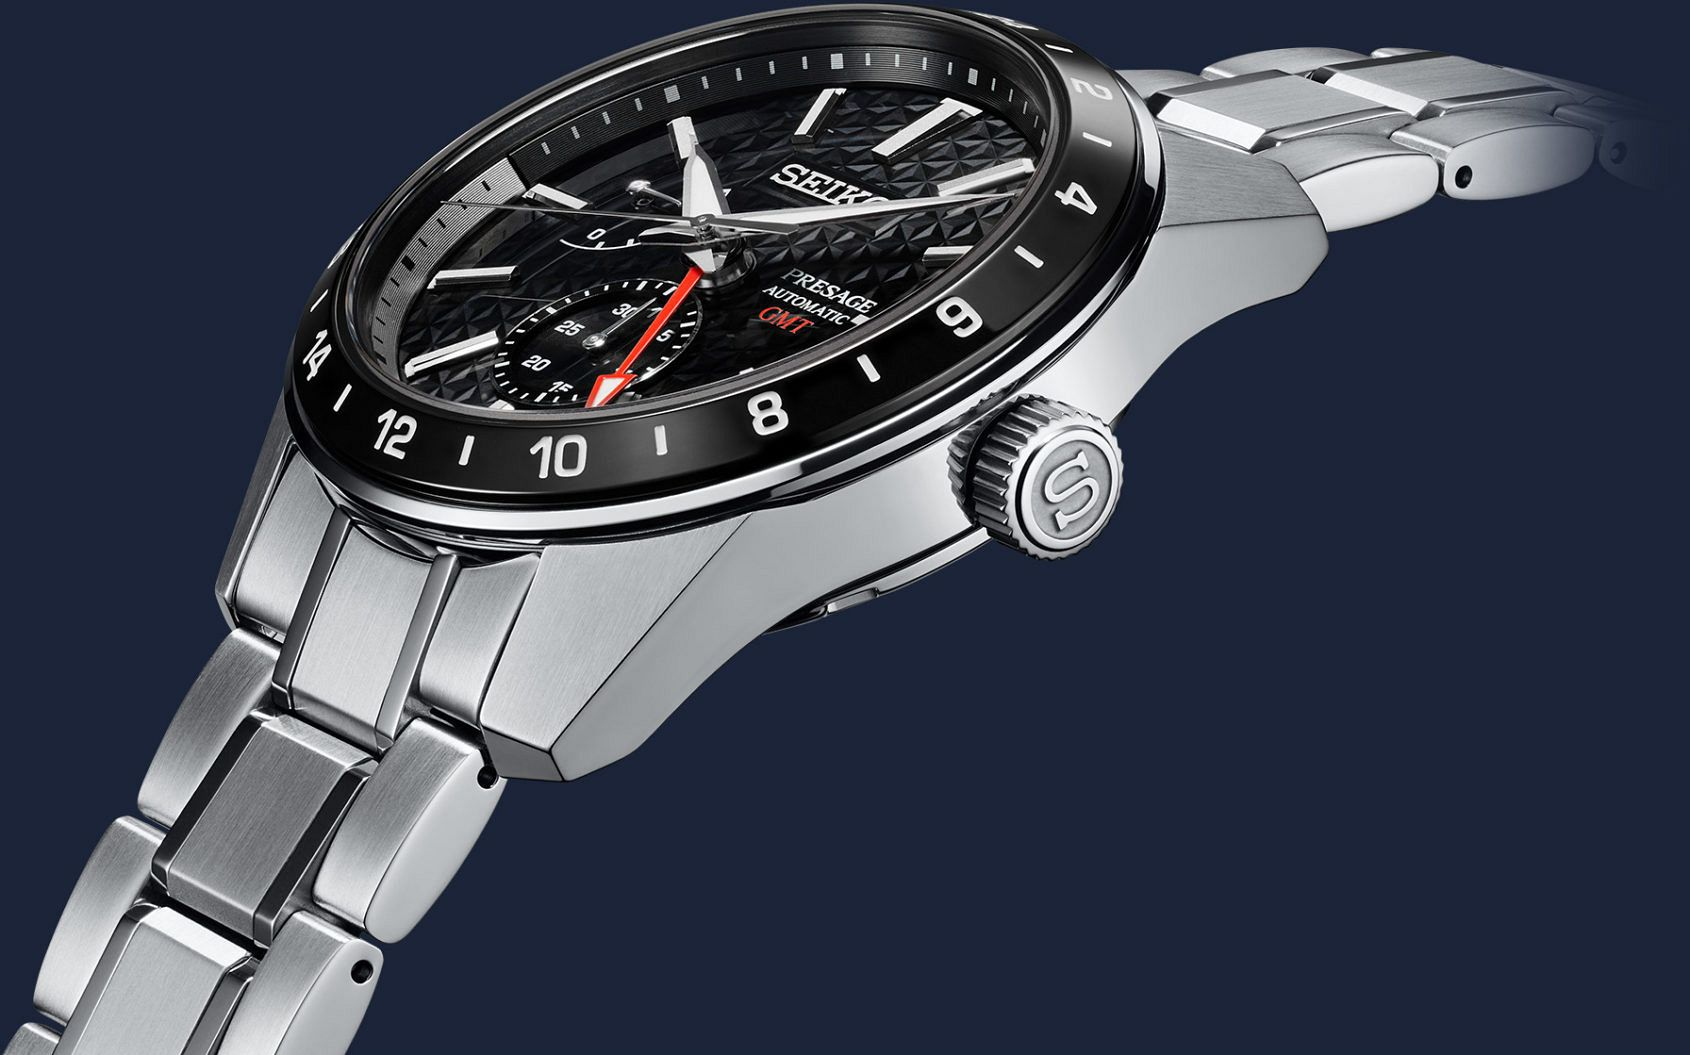 INTRODUCING: The Seiko Presage Sharp Edged GMT Collection oozes robust elegance